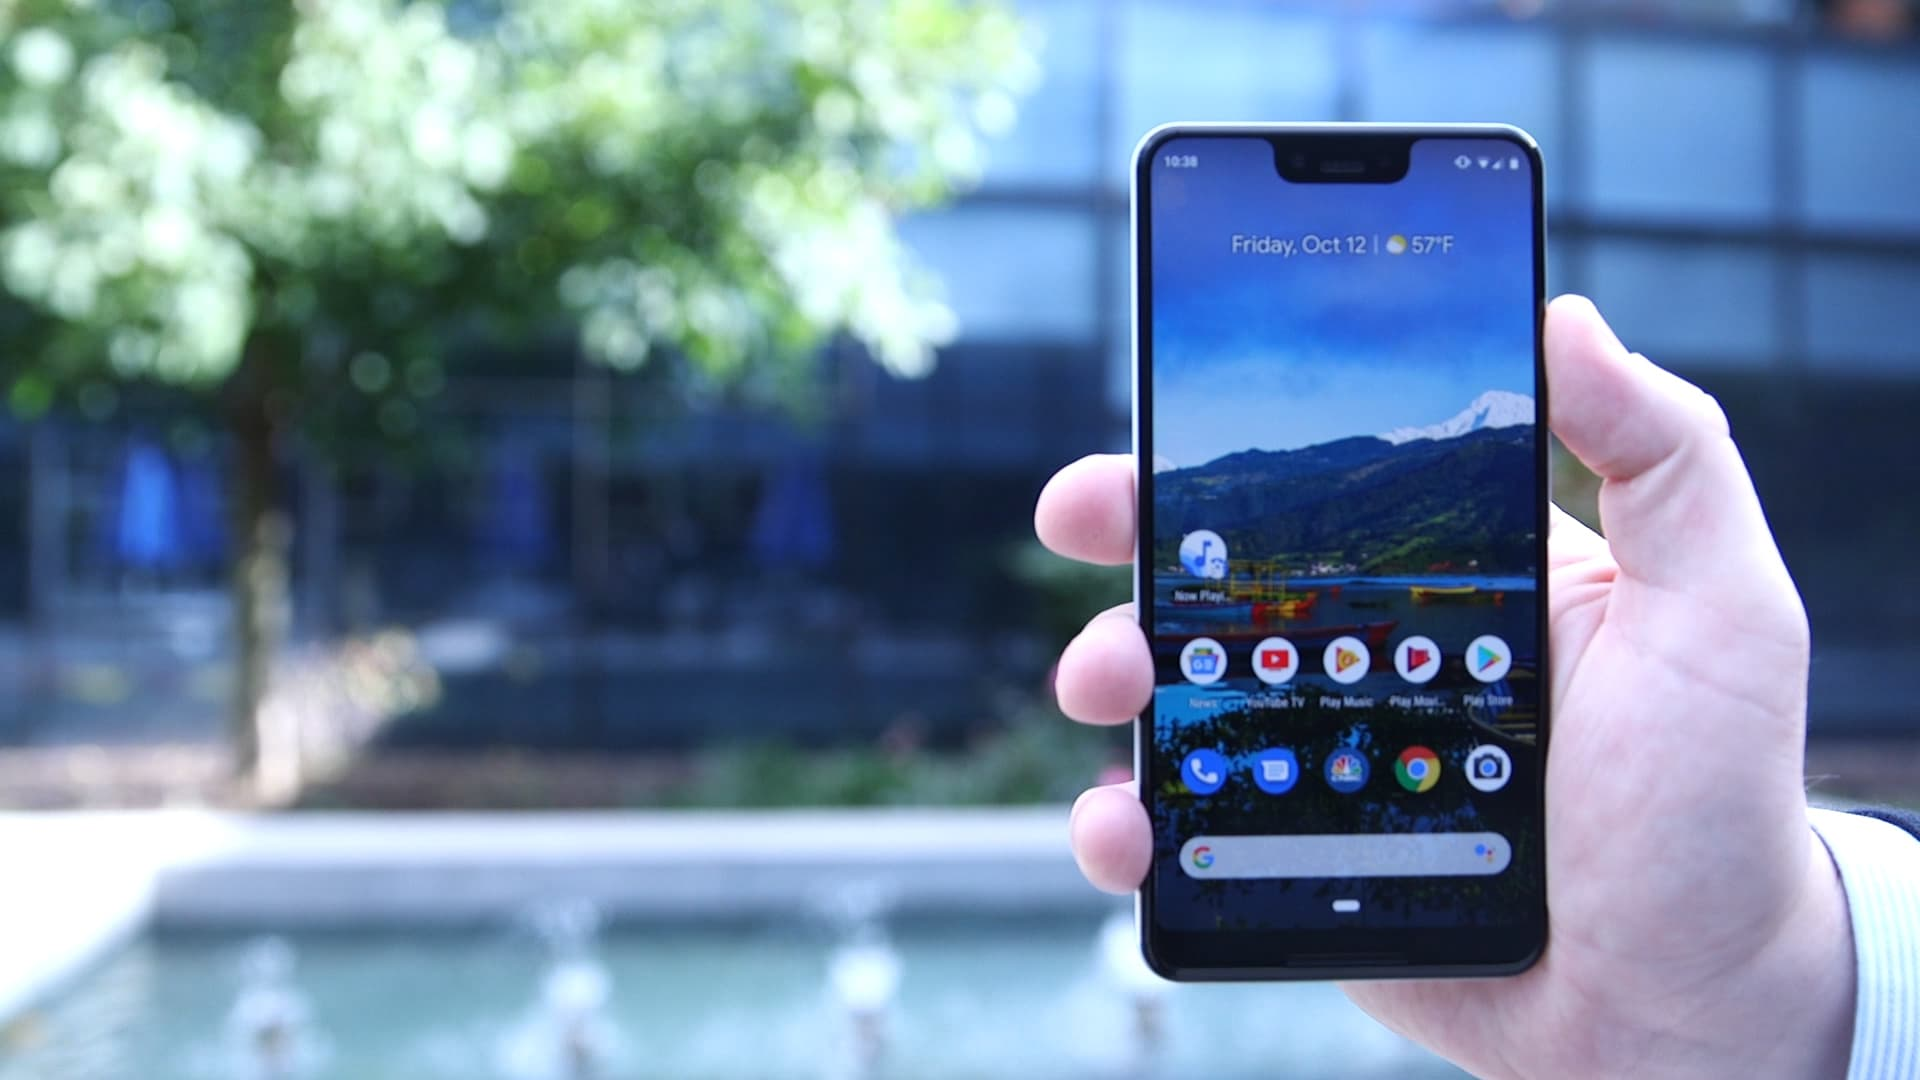 Google's Pixel 3 and Pixel 3 XL phones have fantastic features, but they  come at a high price